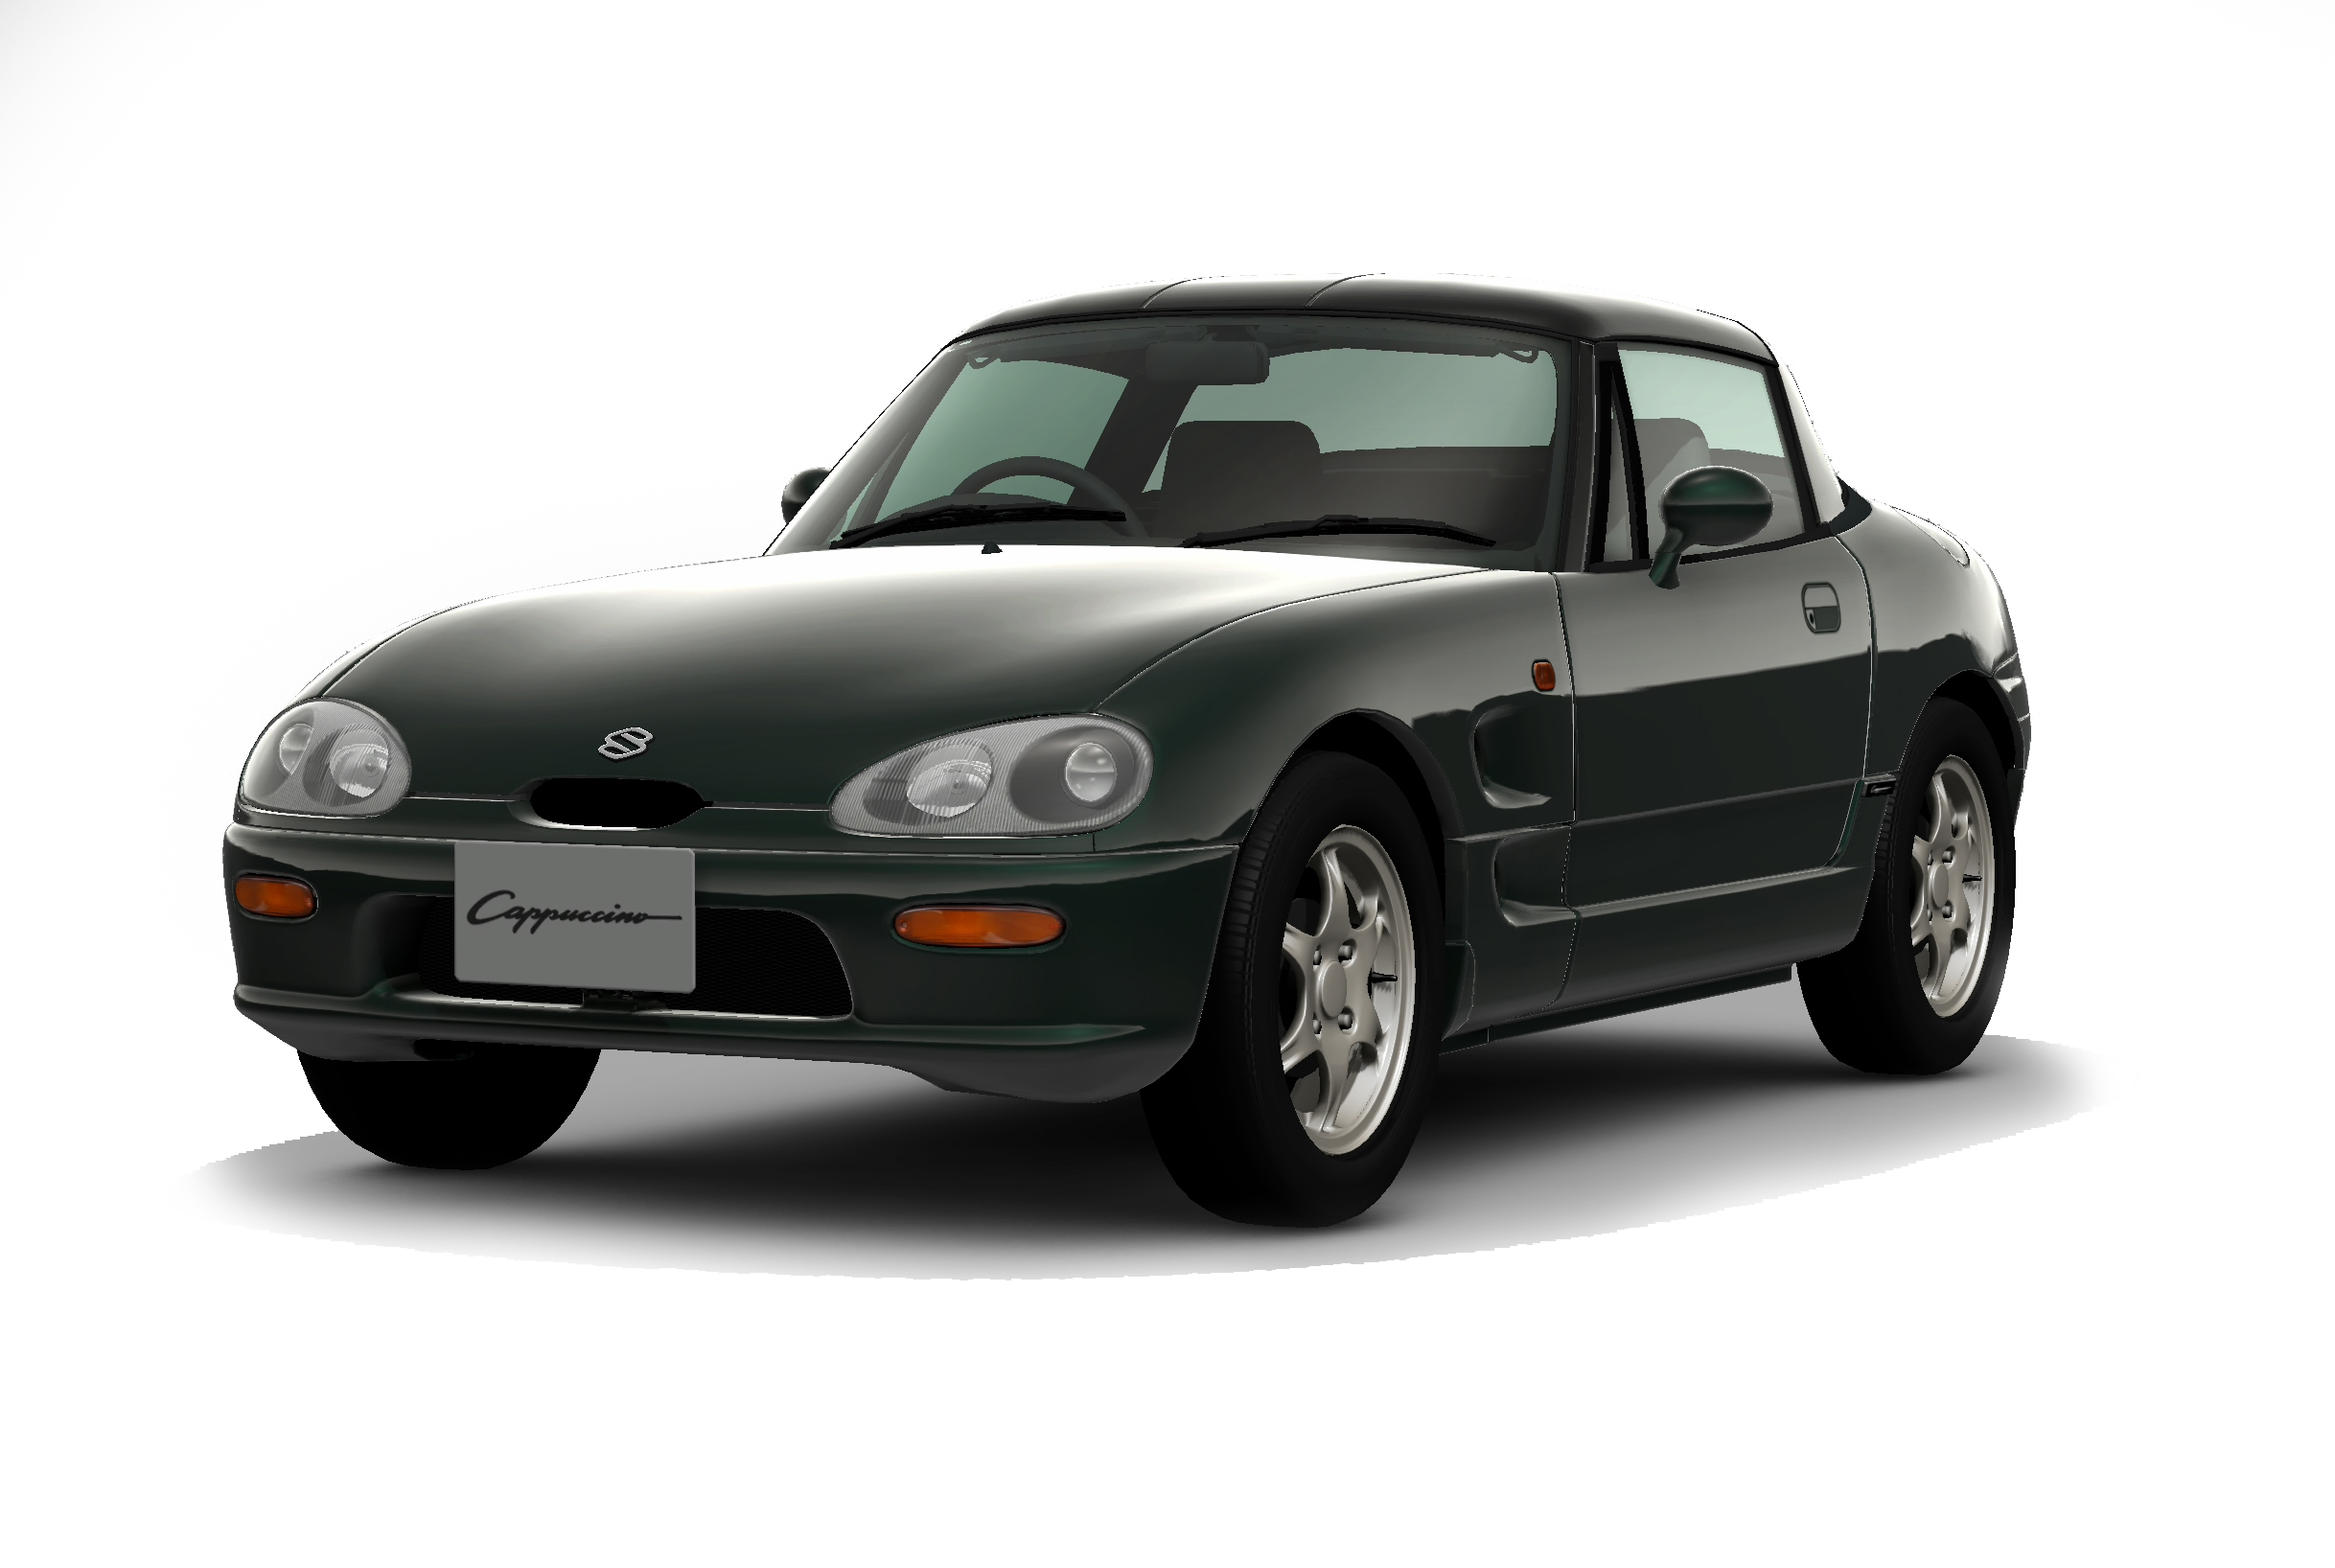 1991 suzuki cappuccino. Black Bedroom Furniture Sets. Home Design Ideas